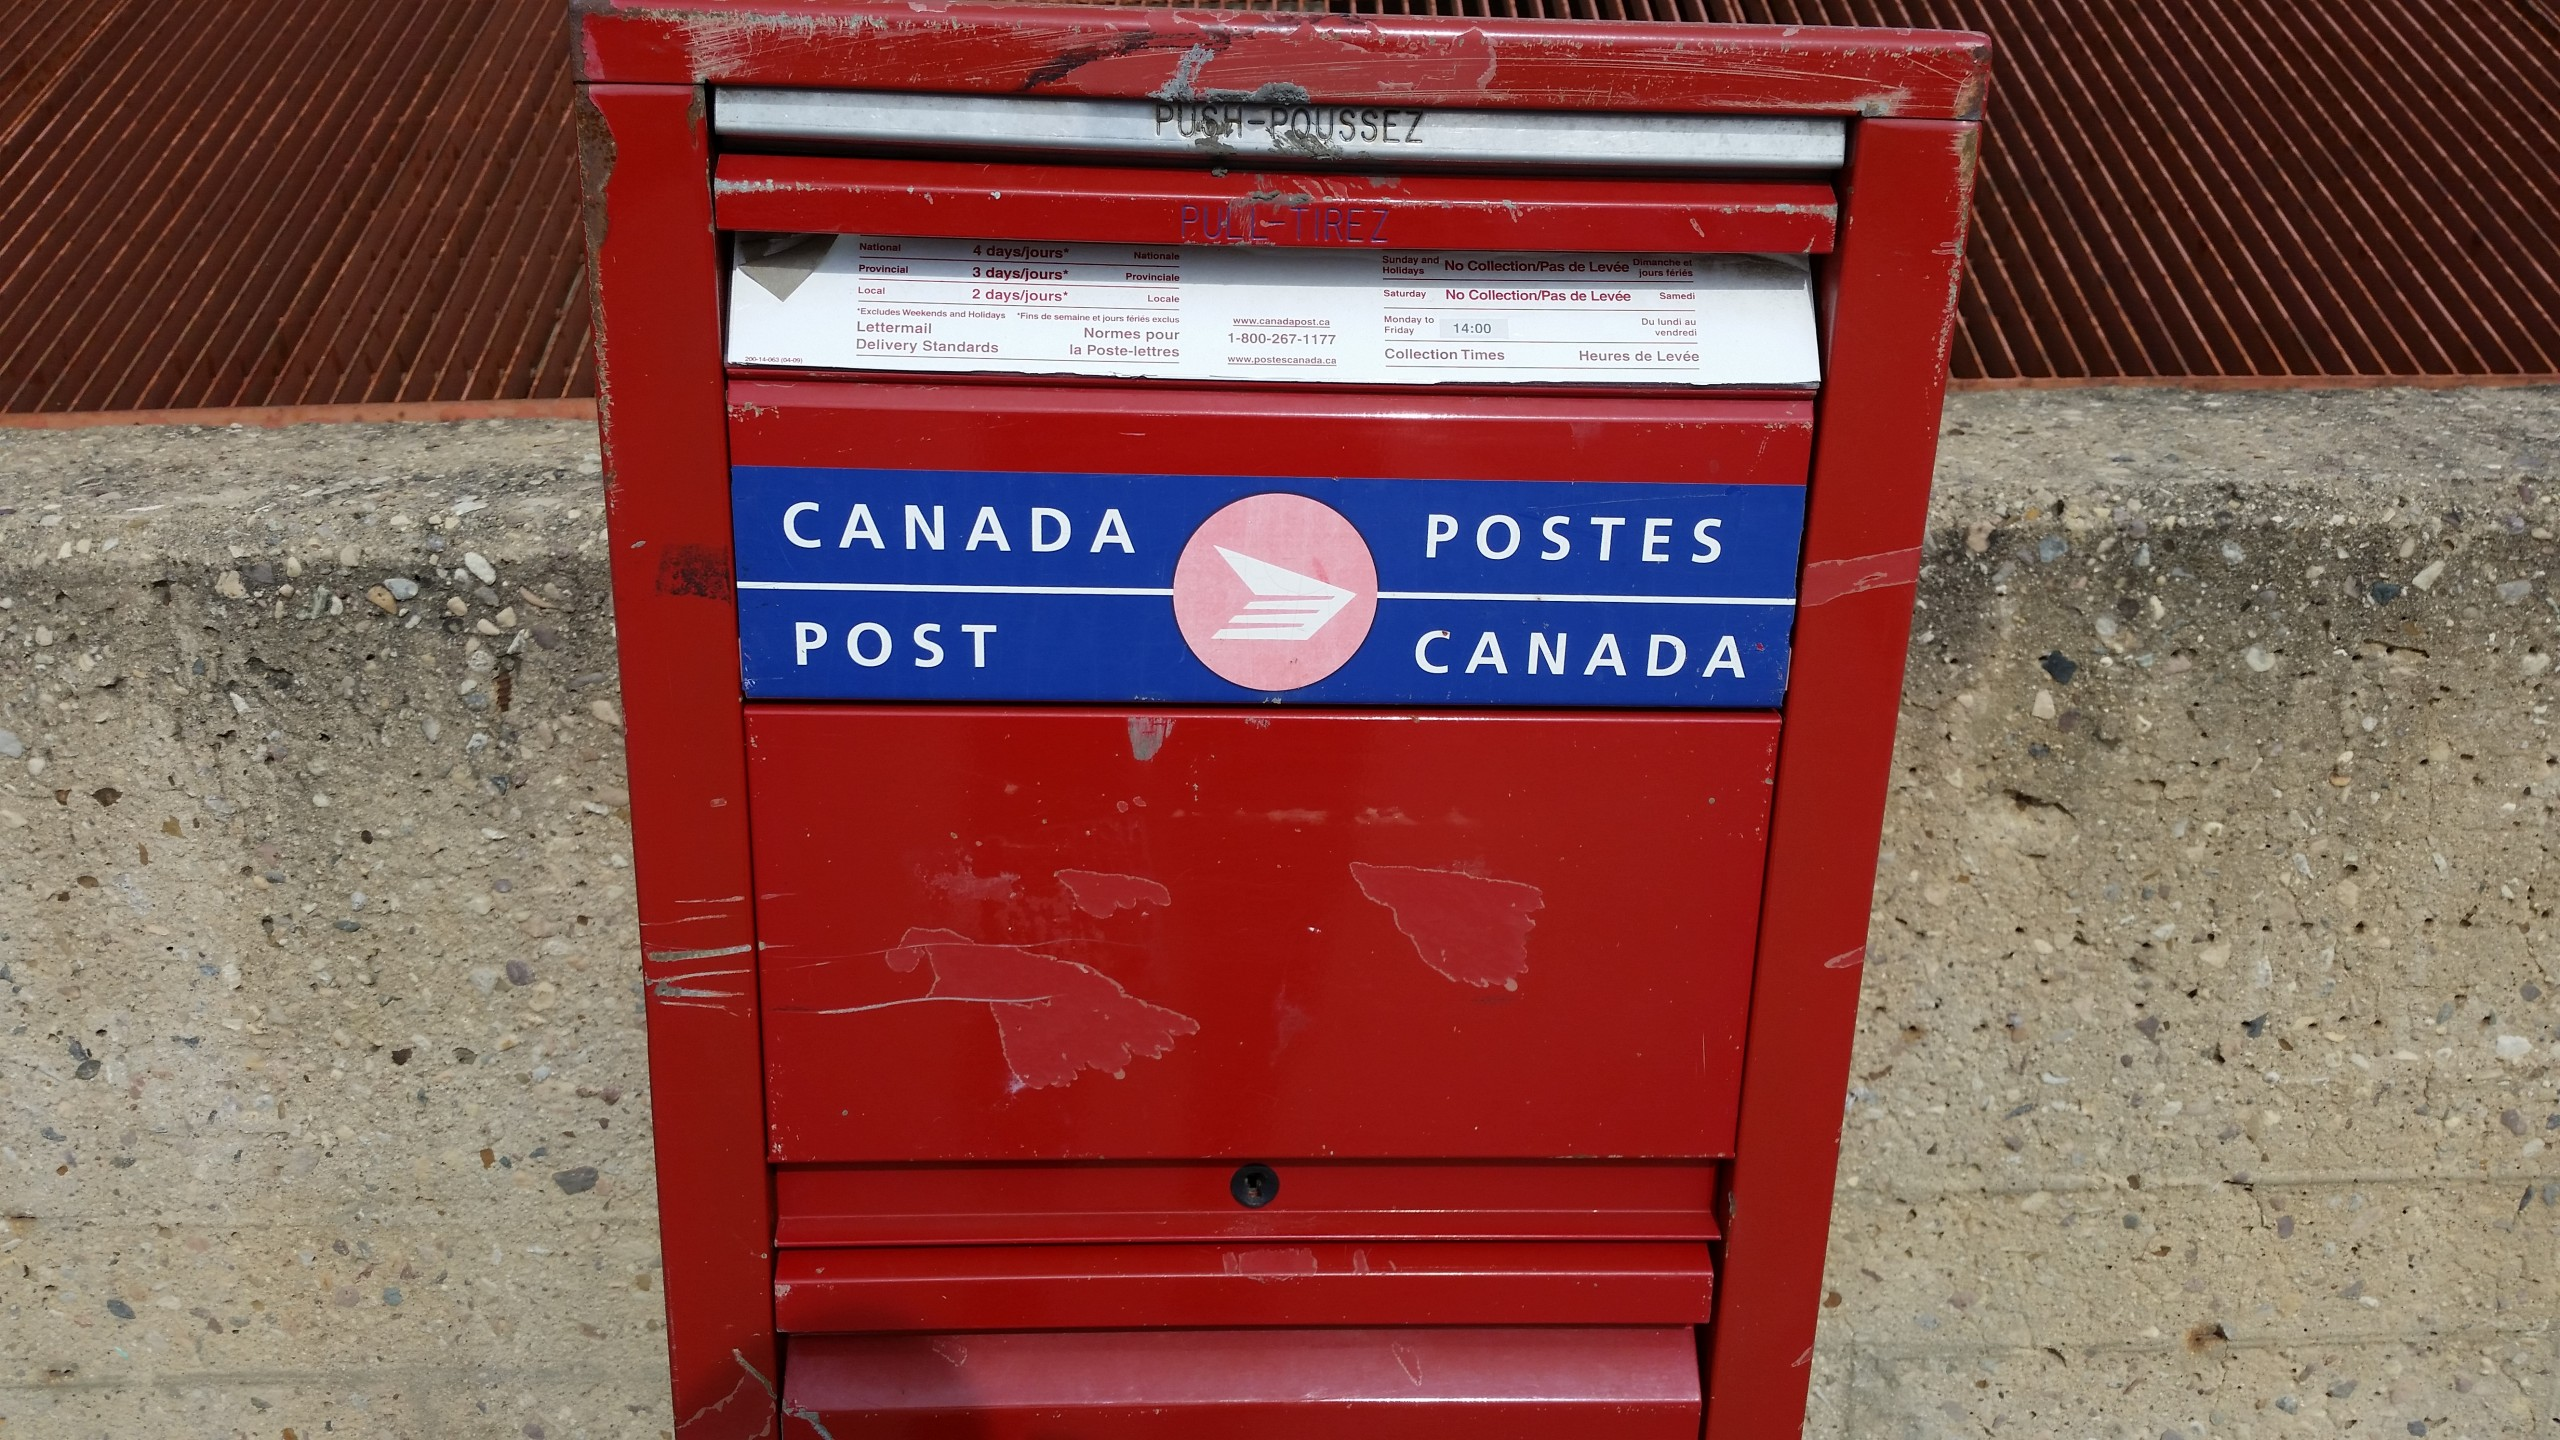 Canada Post has withdrawn 72 hour lockout notice